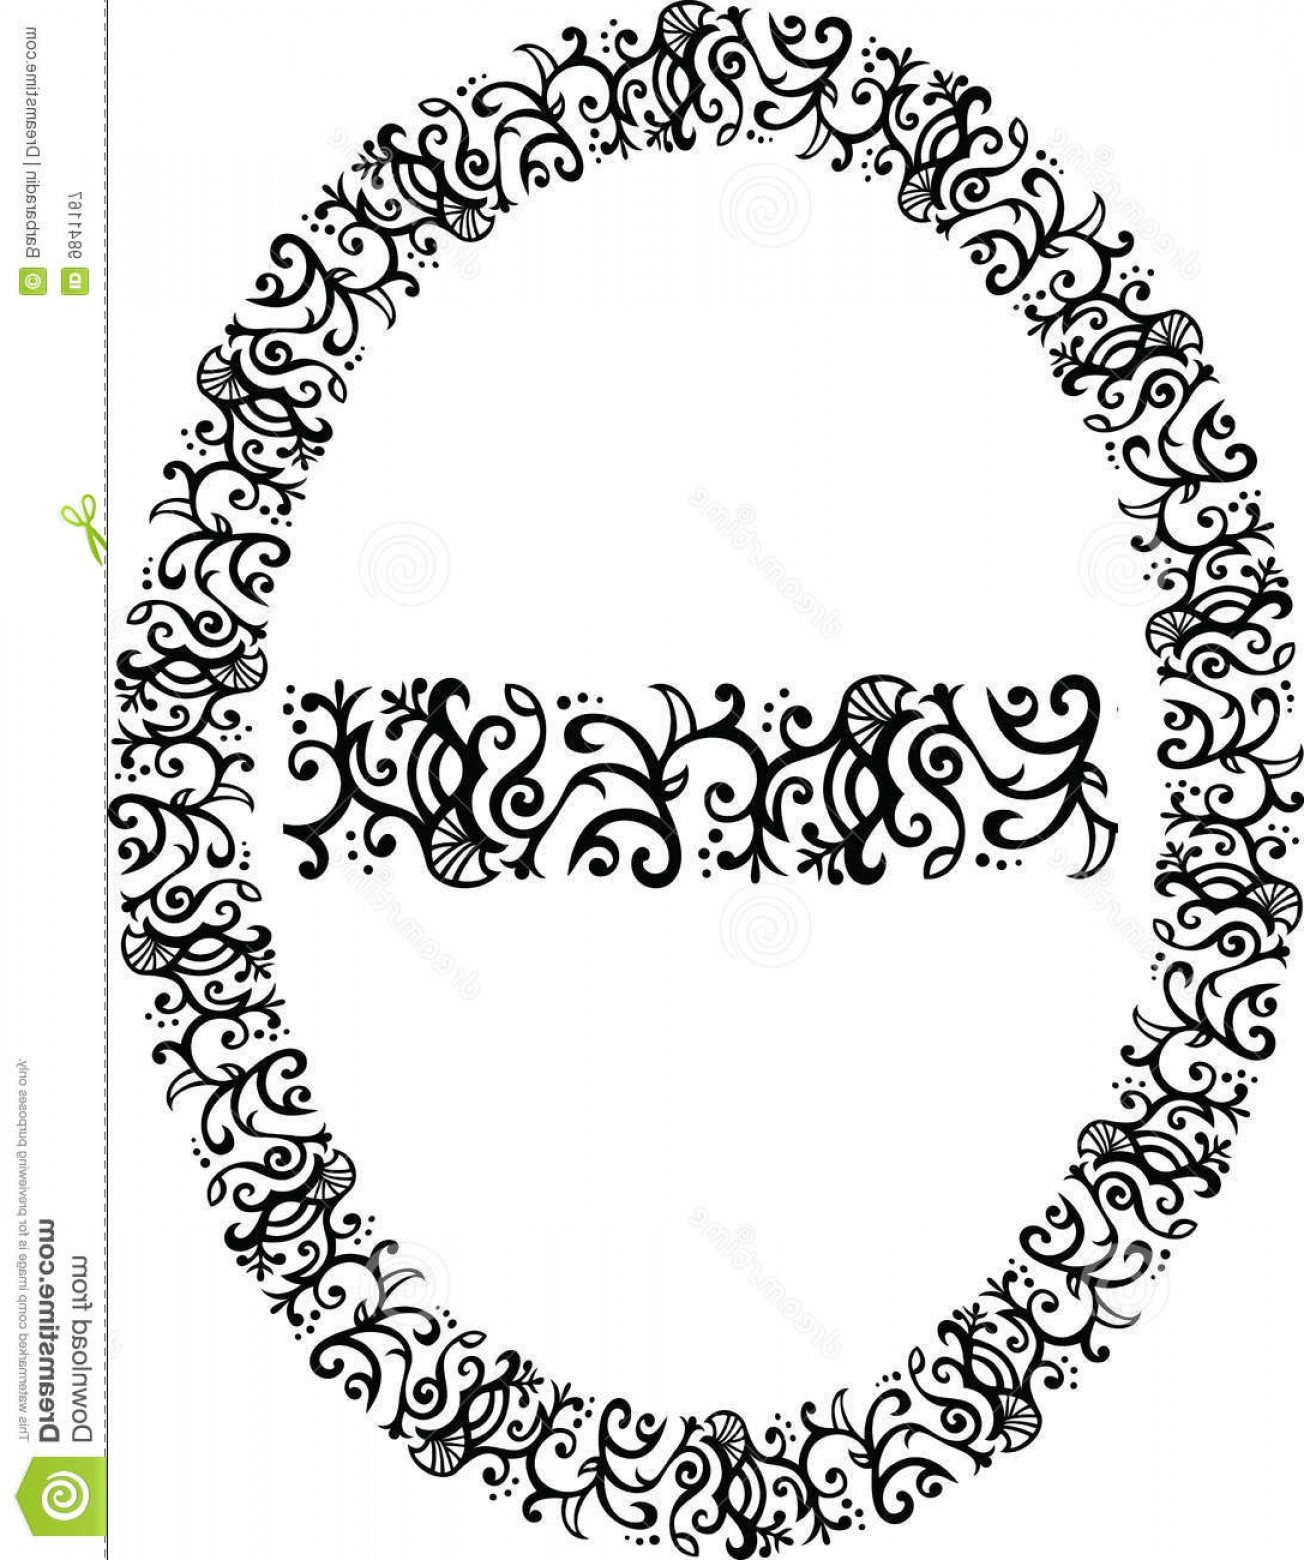 Filigree Oval Frame Vector: Royalty Free Stock Photography Filigree Vector Border Image